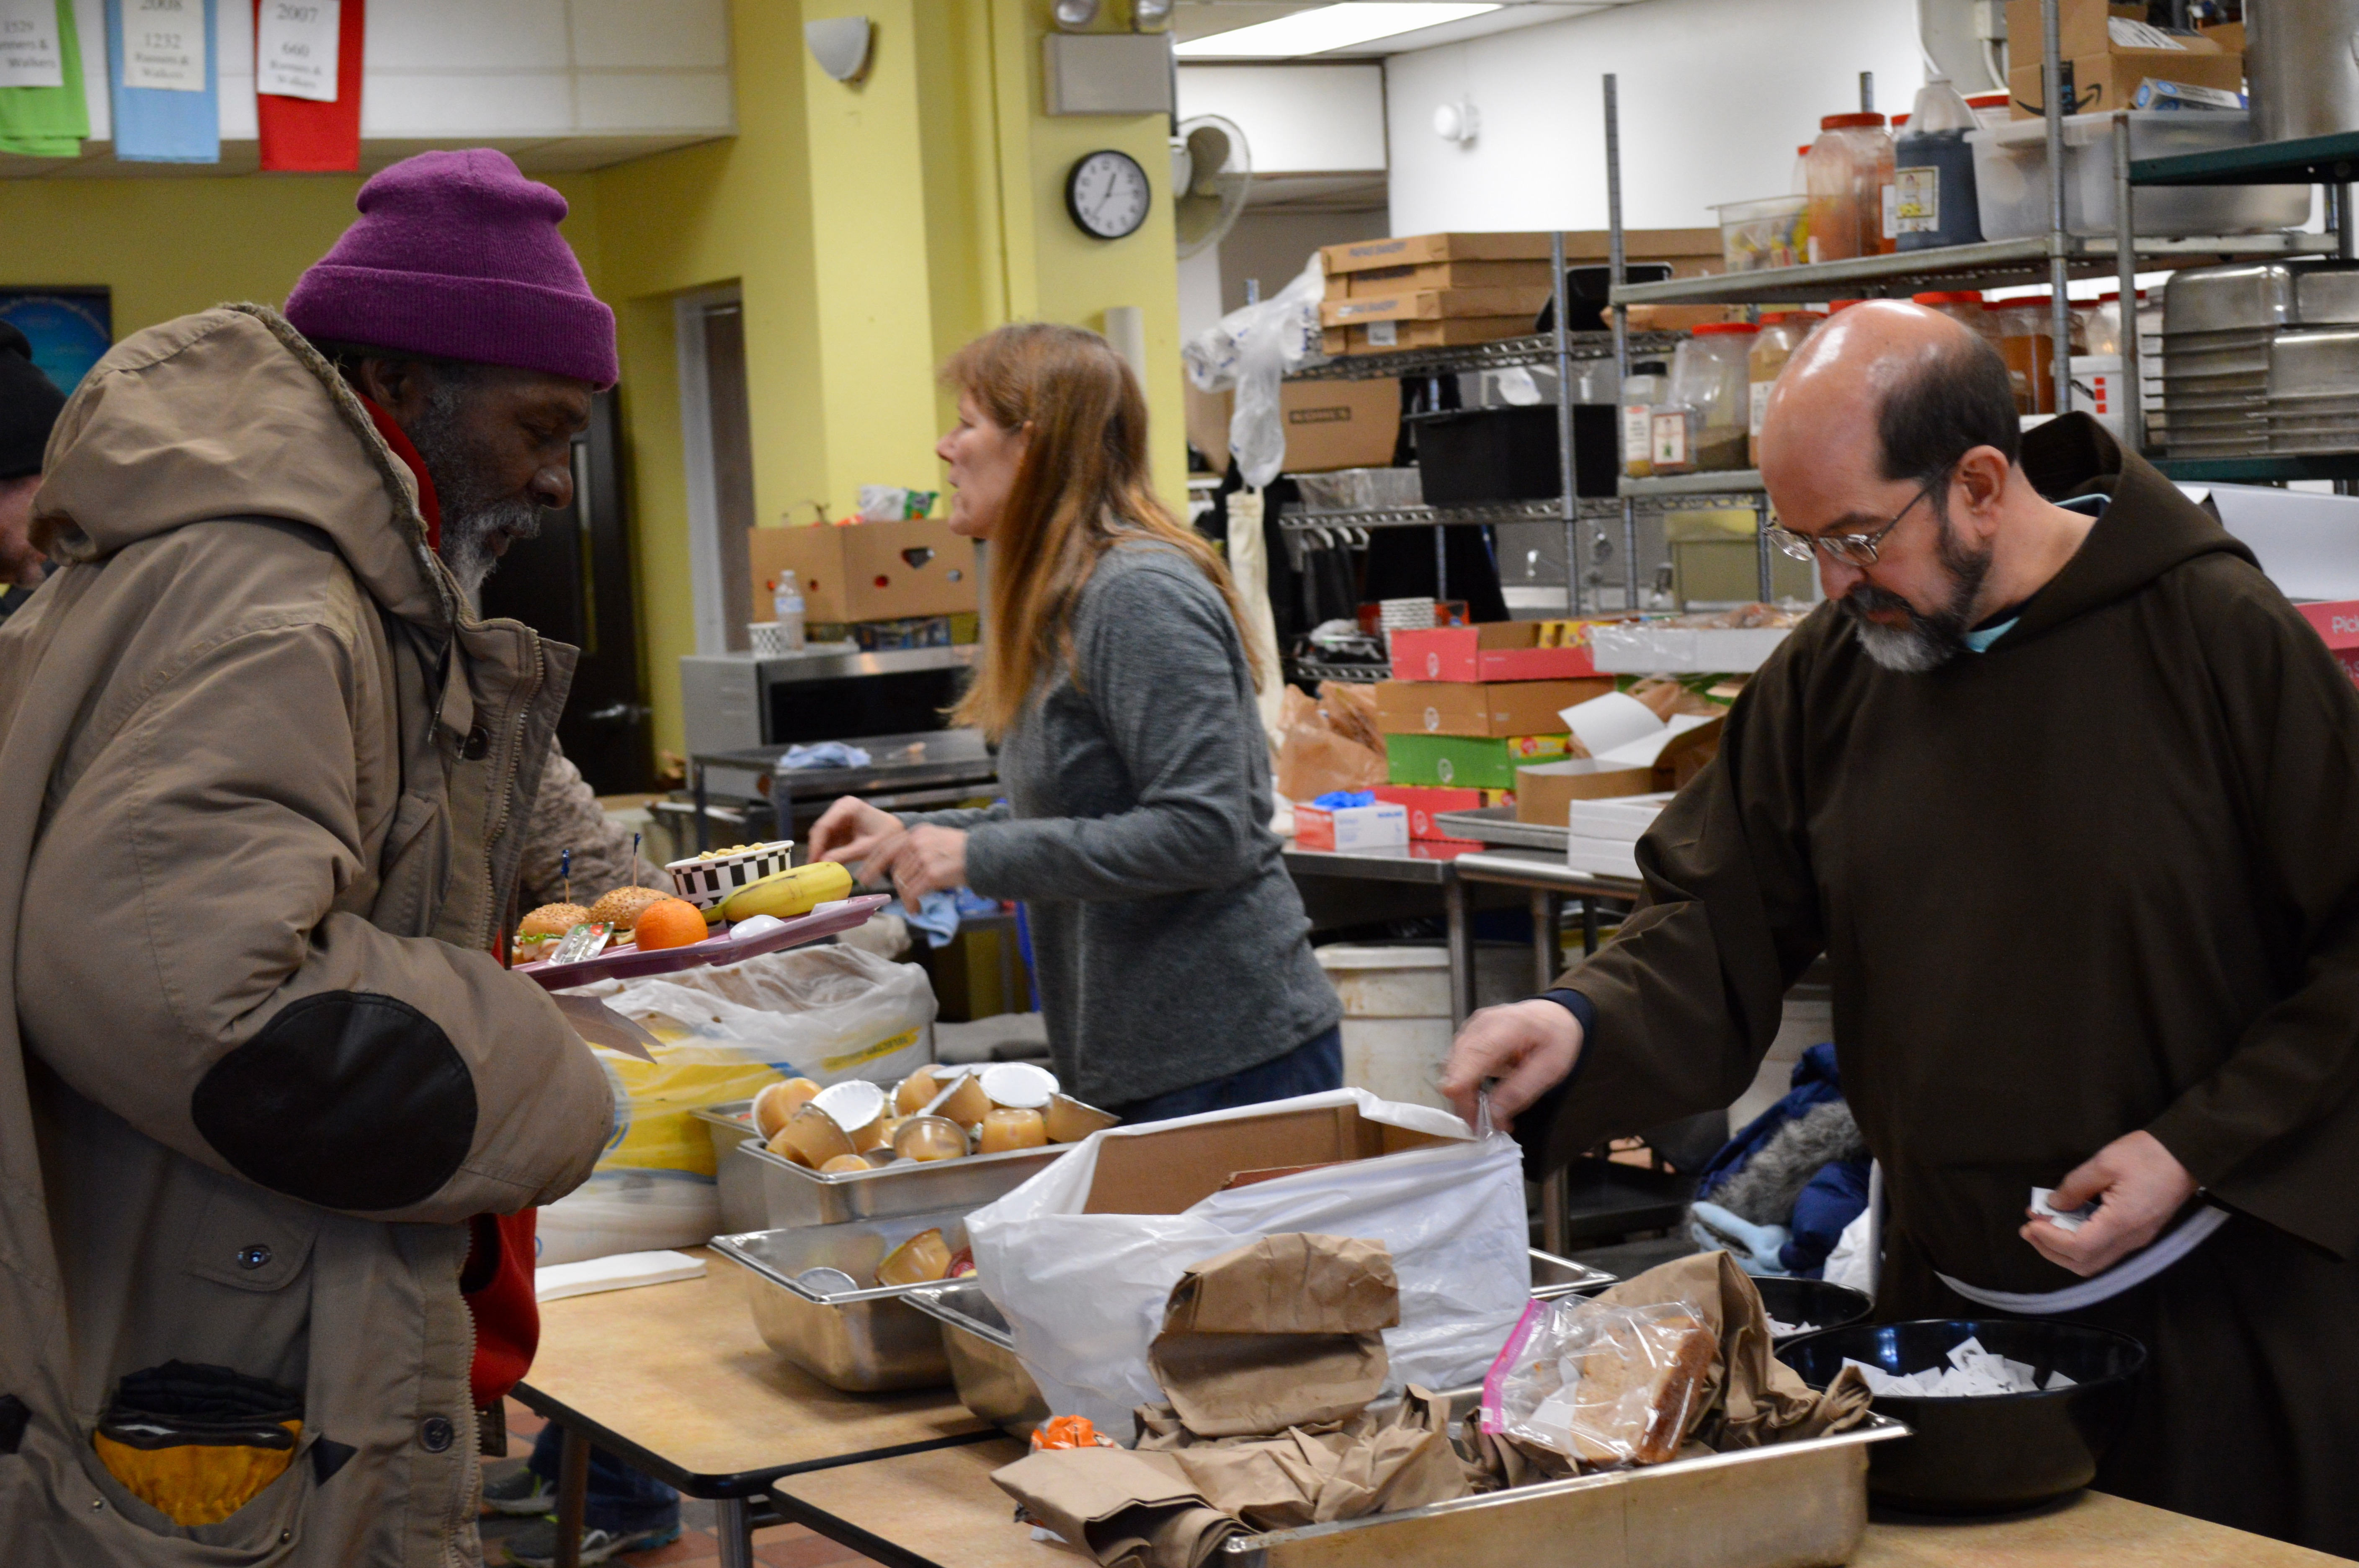 Brother Rob Roemer serves lunch at St. Ben's, which expanded its hours due to Milwaukee's extreme cold. Photo by Ana Martinez-Ortiz/NNS.